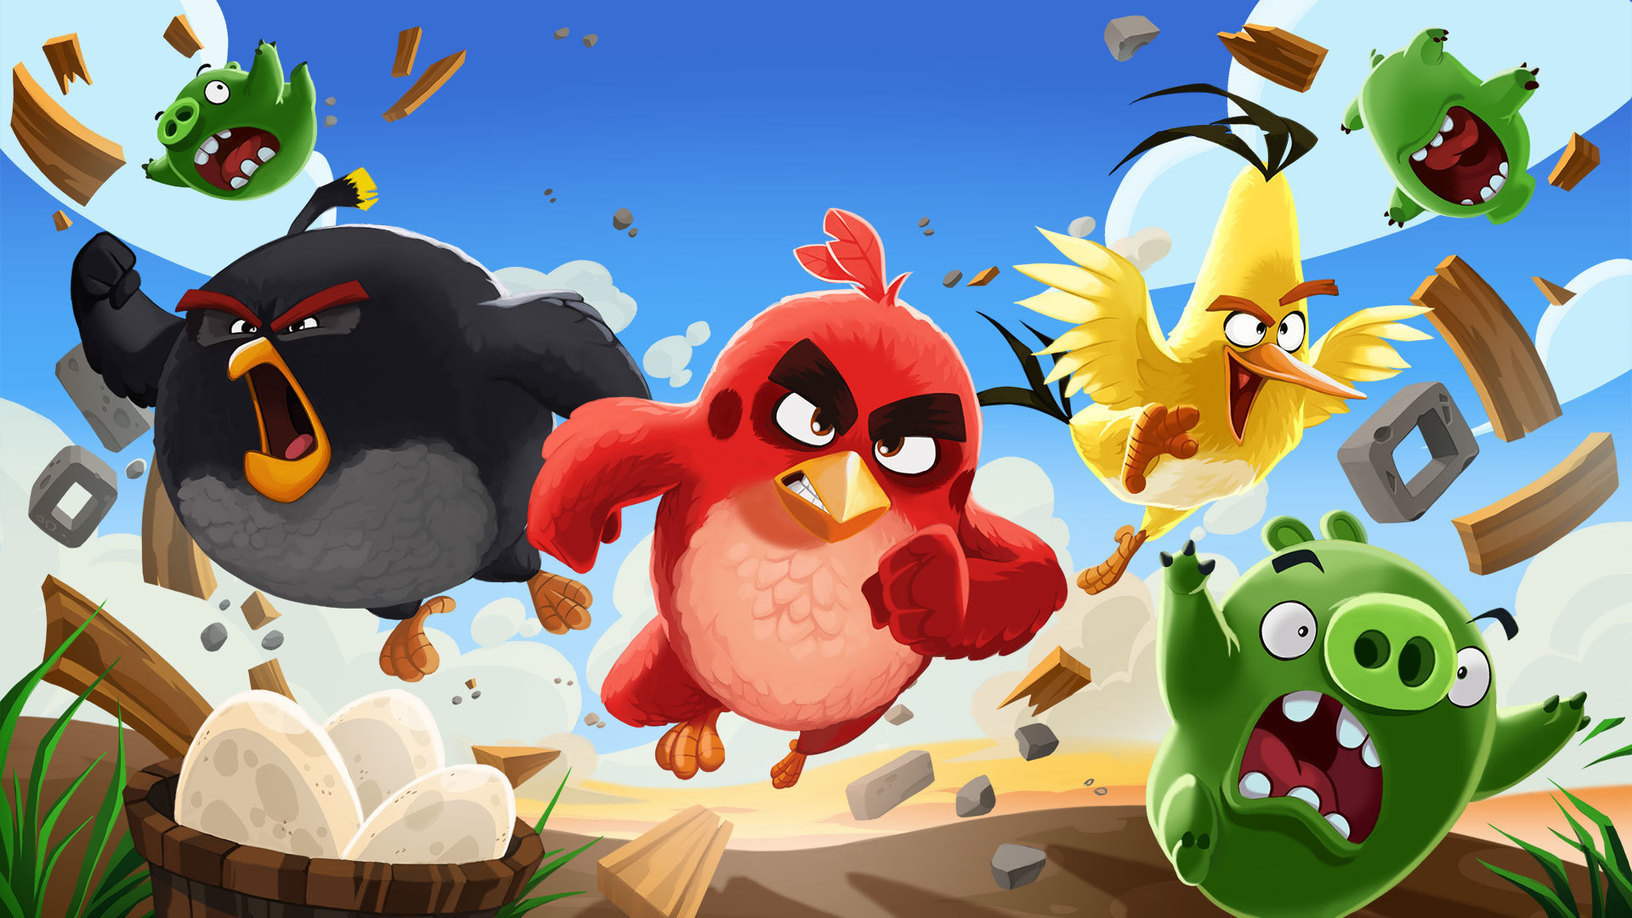 Angry Birds 2 Hack 2018 angry birds 2 hack cheats codes 2018 online | 8